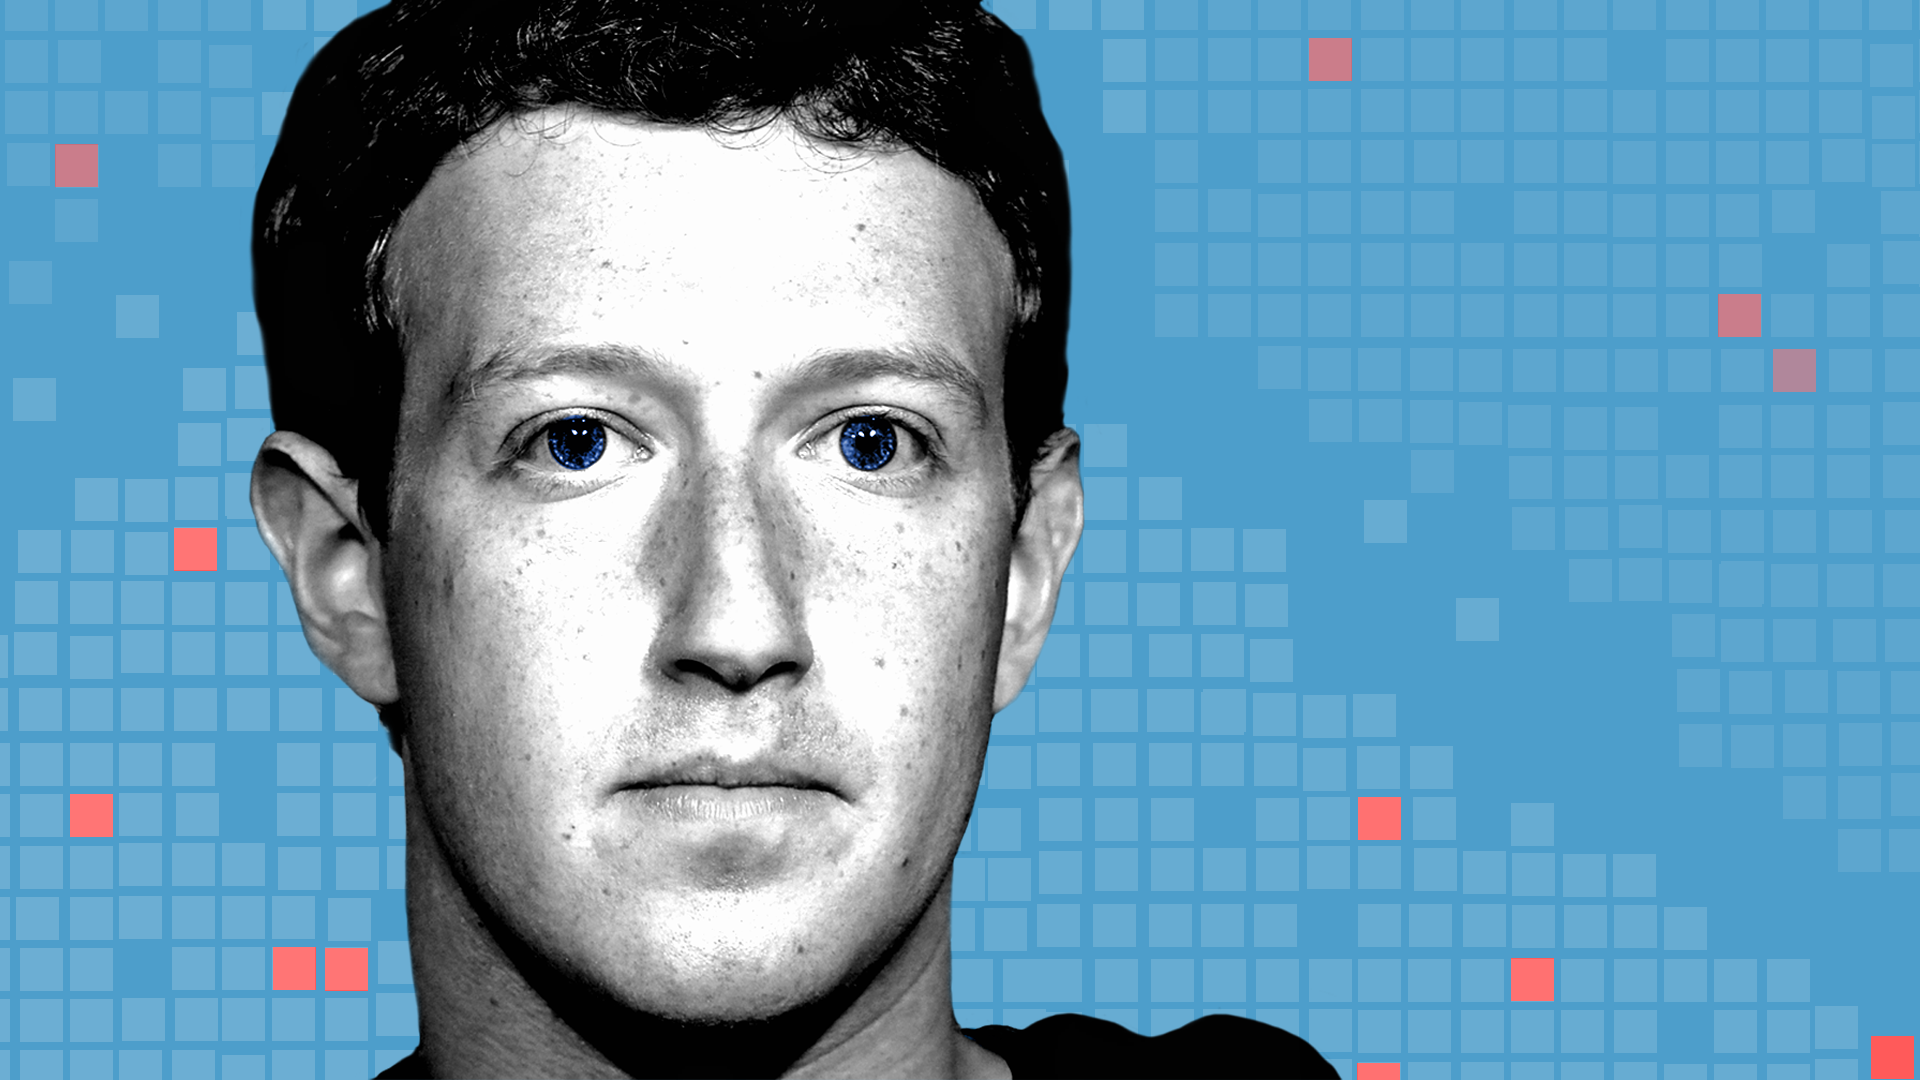 An illustration of Facebook CEO Mark Zuckerberg